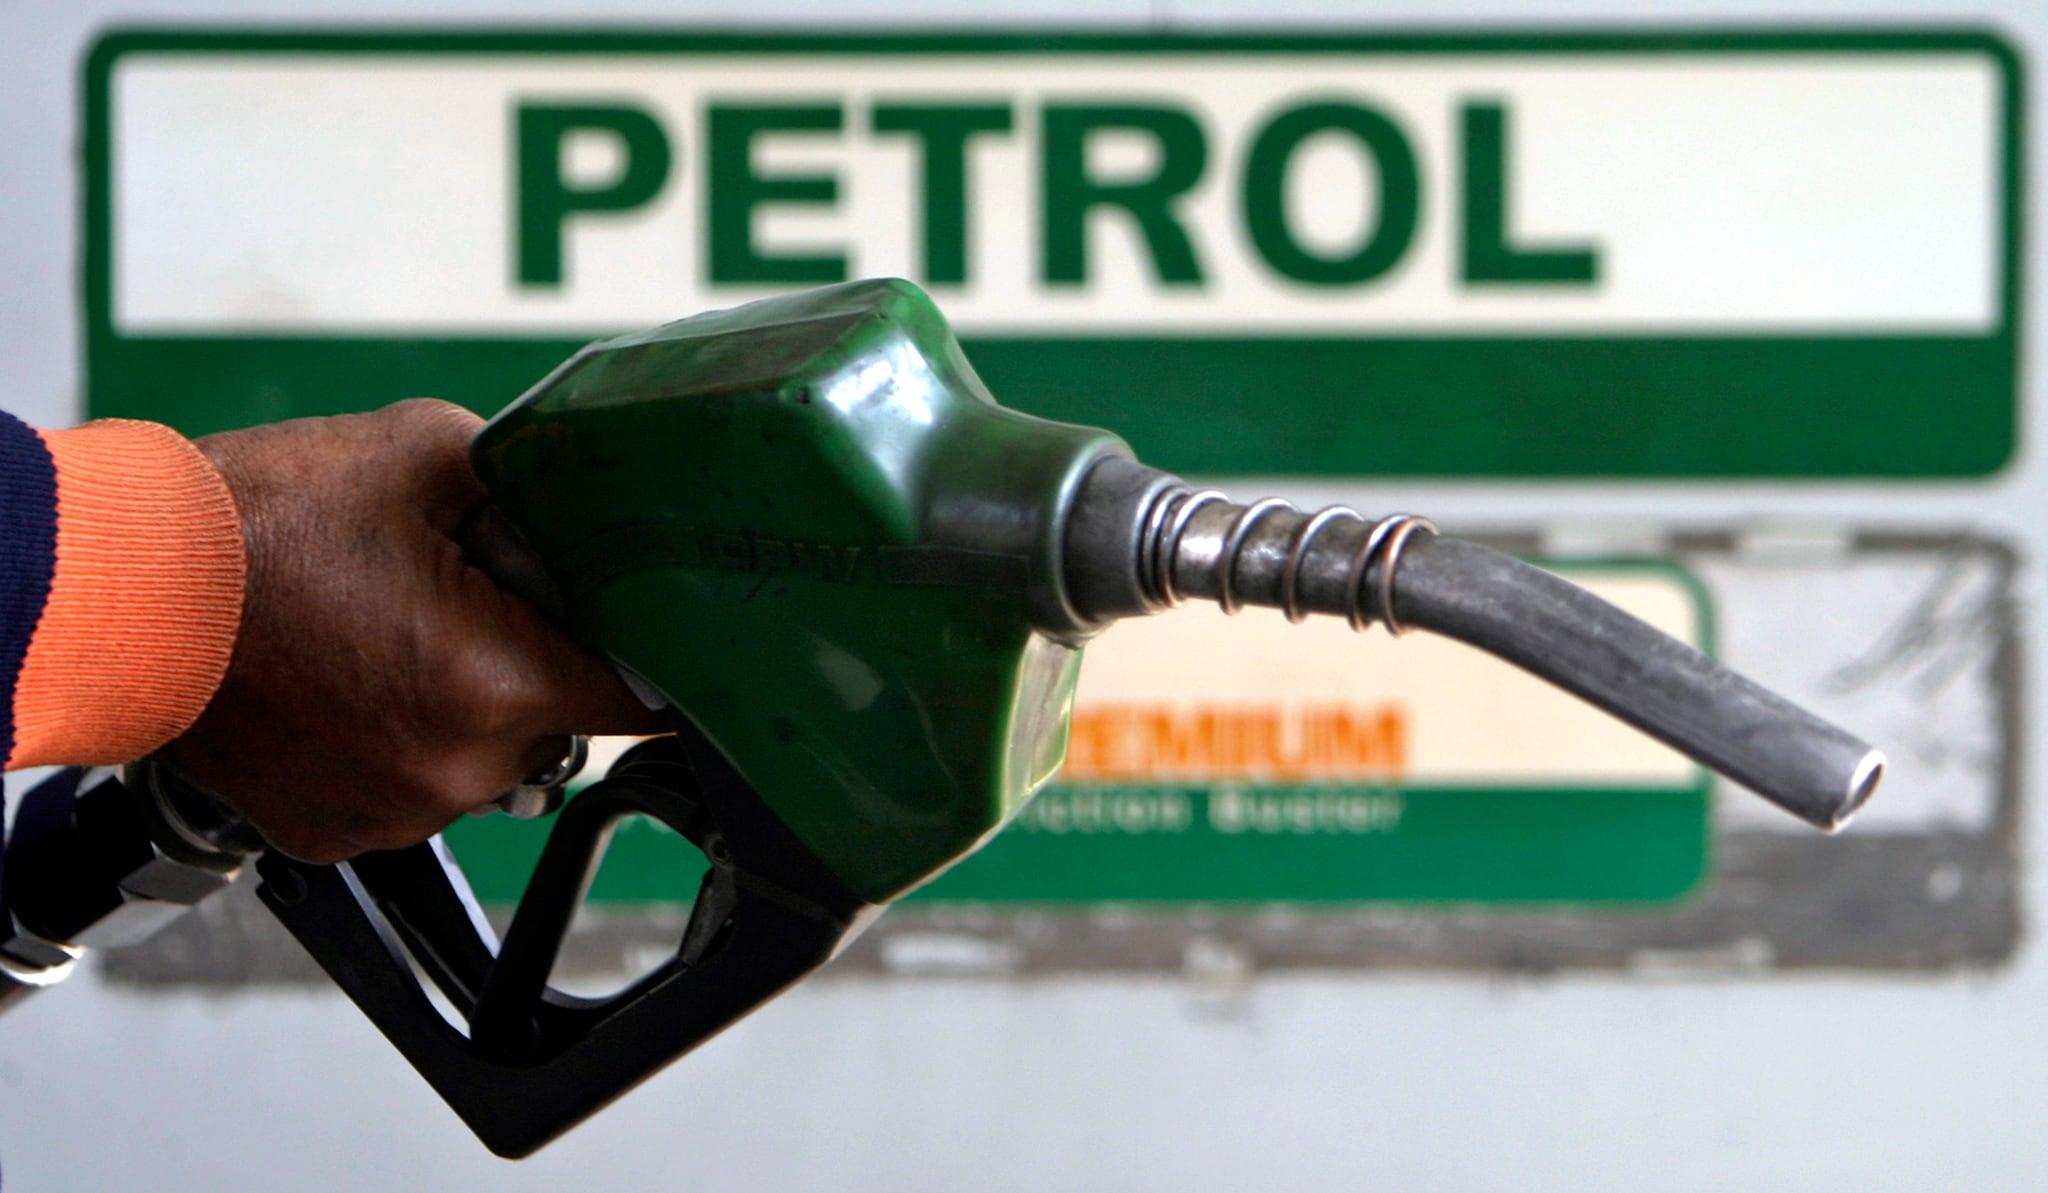 Chennai Petroleum's share price fell 2.71 percent to its 52-week low of Rs 118.25. (Stock Image)